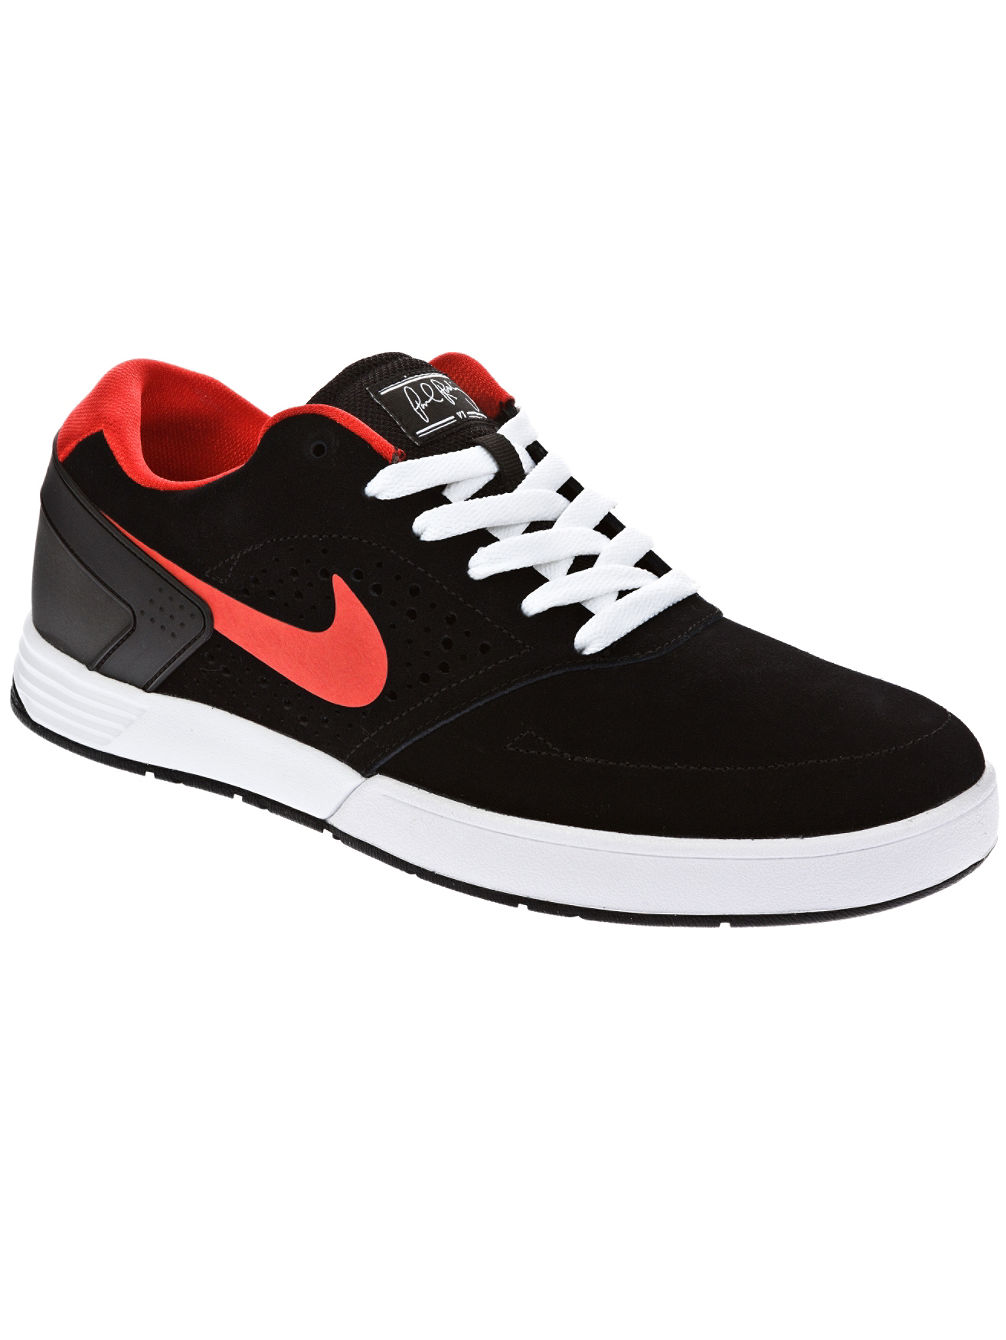 Nike Paul Rodriguez 6 Sneakers